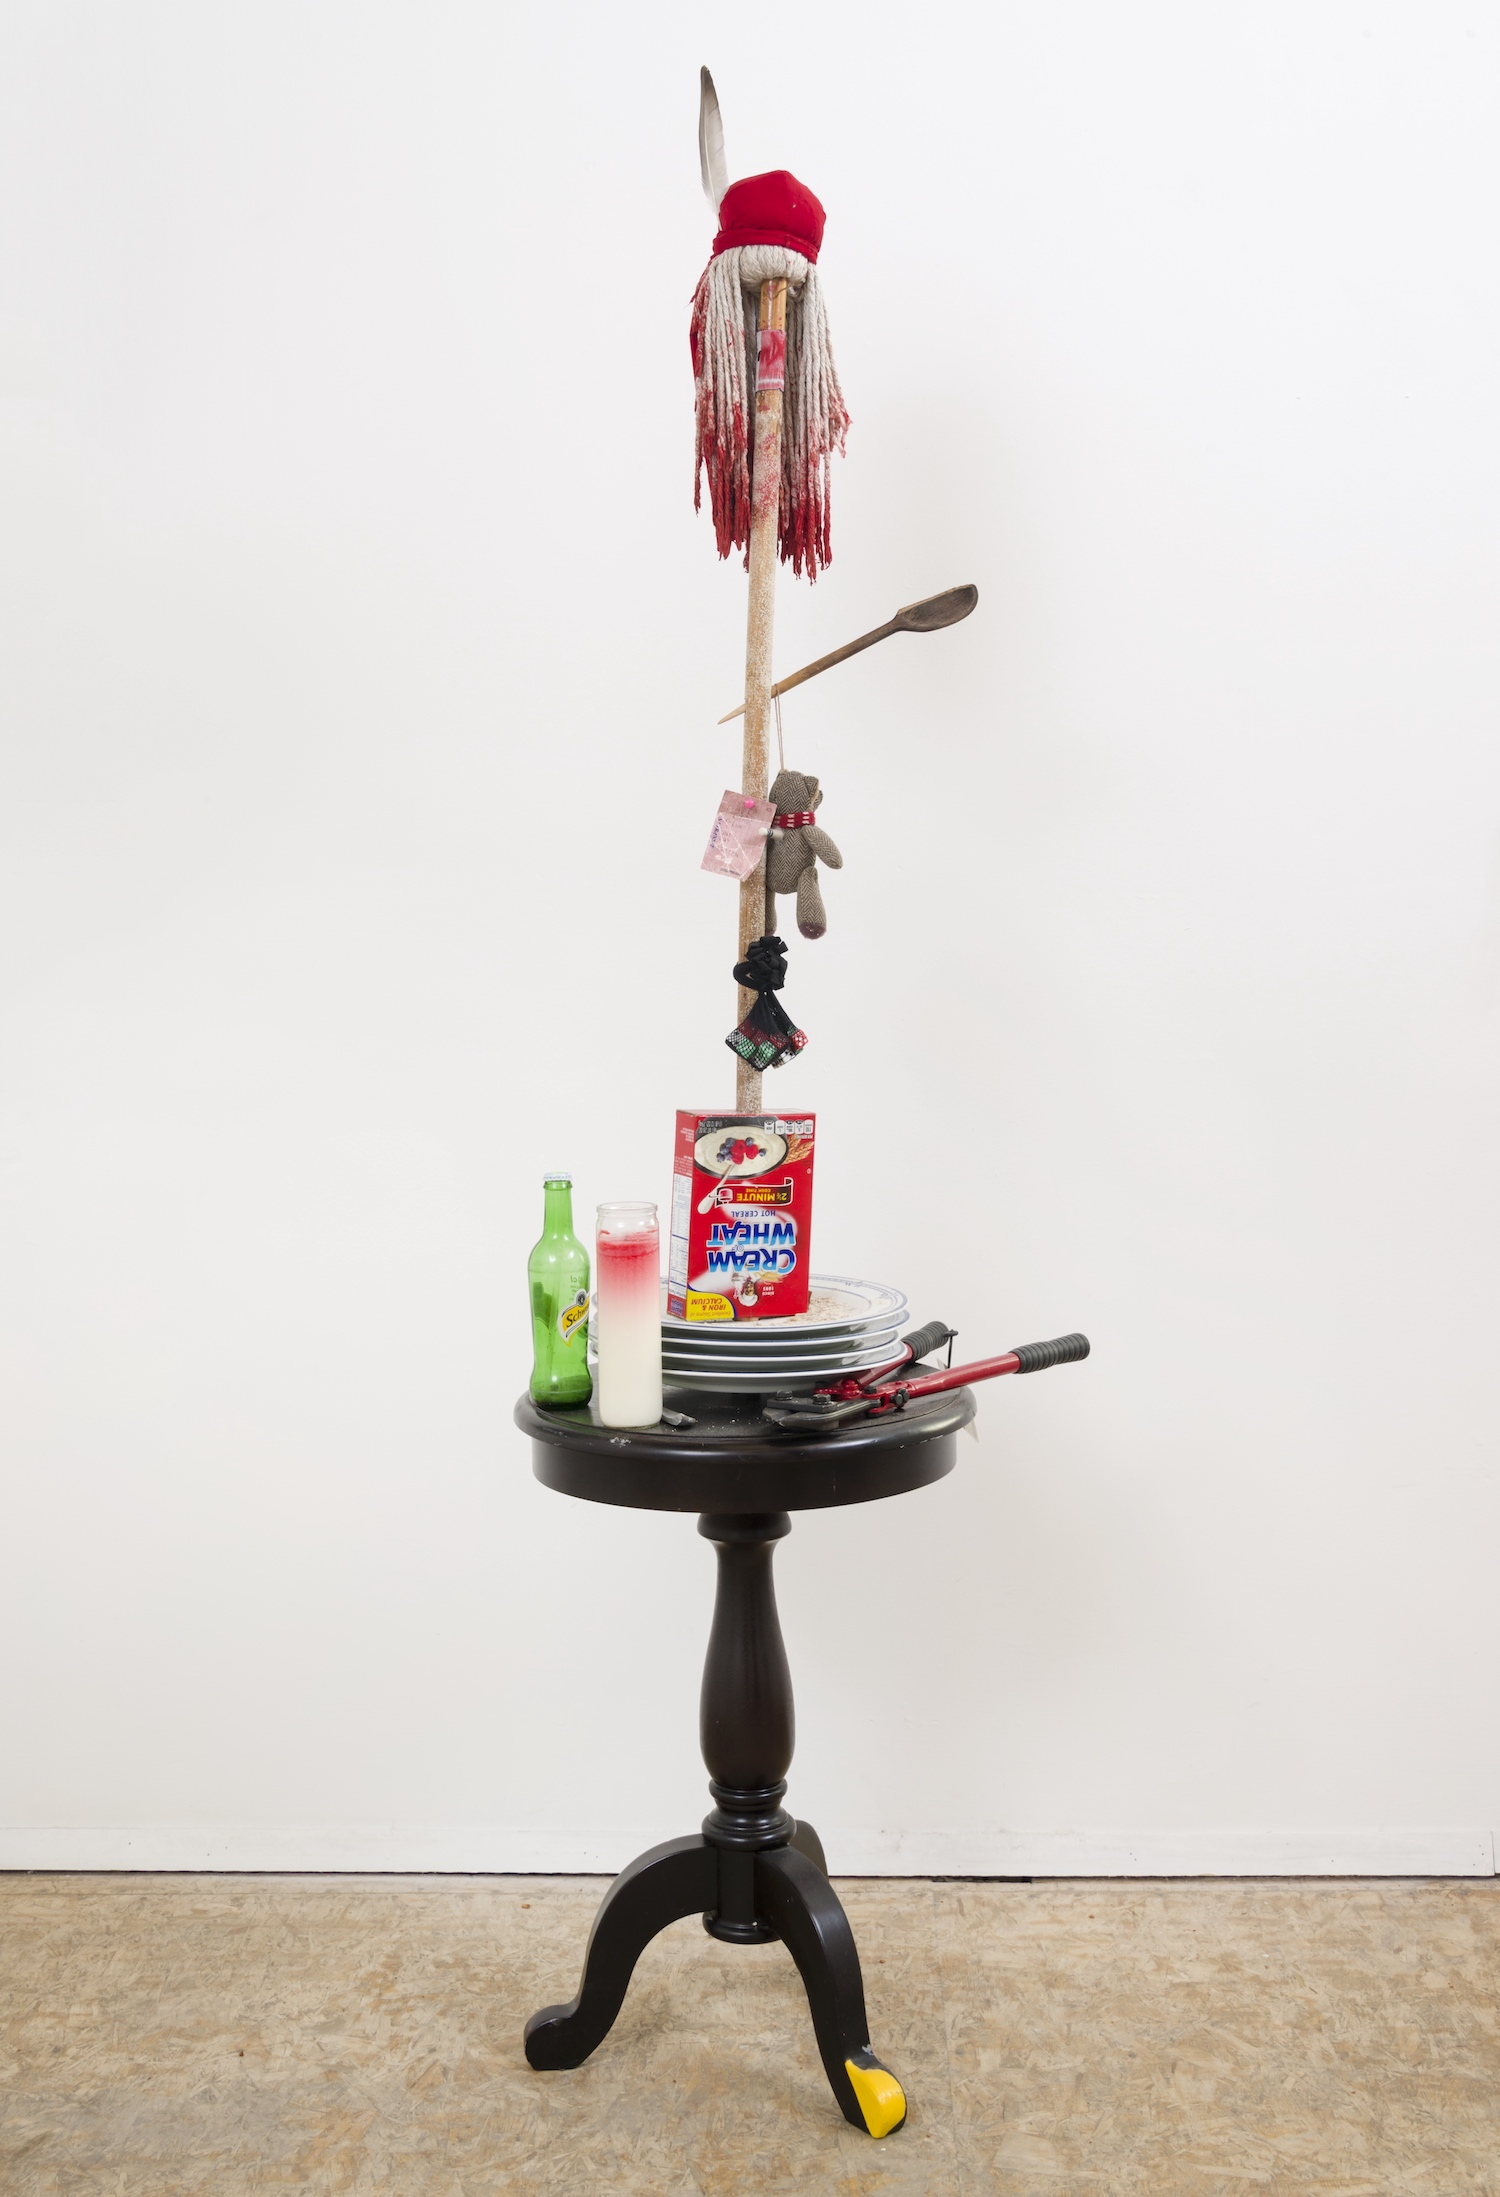 Daniel Gaitor-Lomack  Flesh Wound , 2016 mop, red du rag, incense, Cream of Wheat box, Cream of Wheat, broken wood spoon, teddy bear, crayon, feather, acrylic, metallic spray paint , Vaseline, handmade plates (Japan), wood table, glass candle, glass bottle, reverse clothing label, NJ Transit Air train ticket, thumb tack, dice, hair net, bolt cutters 80 x 24 x 20 in.